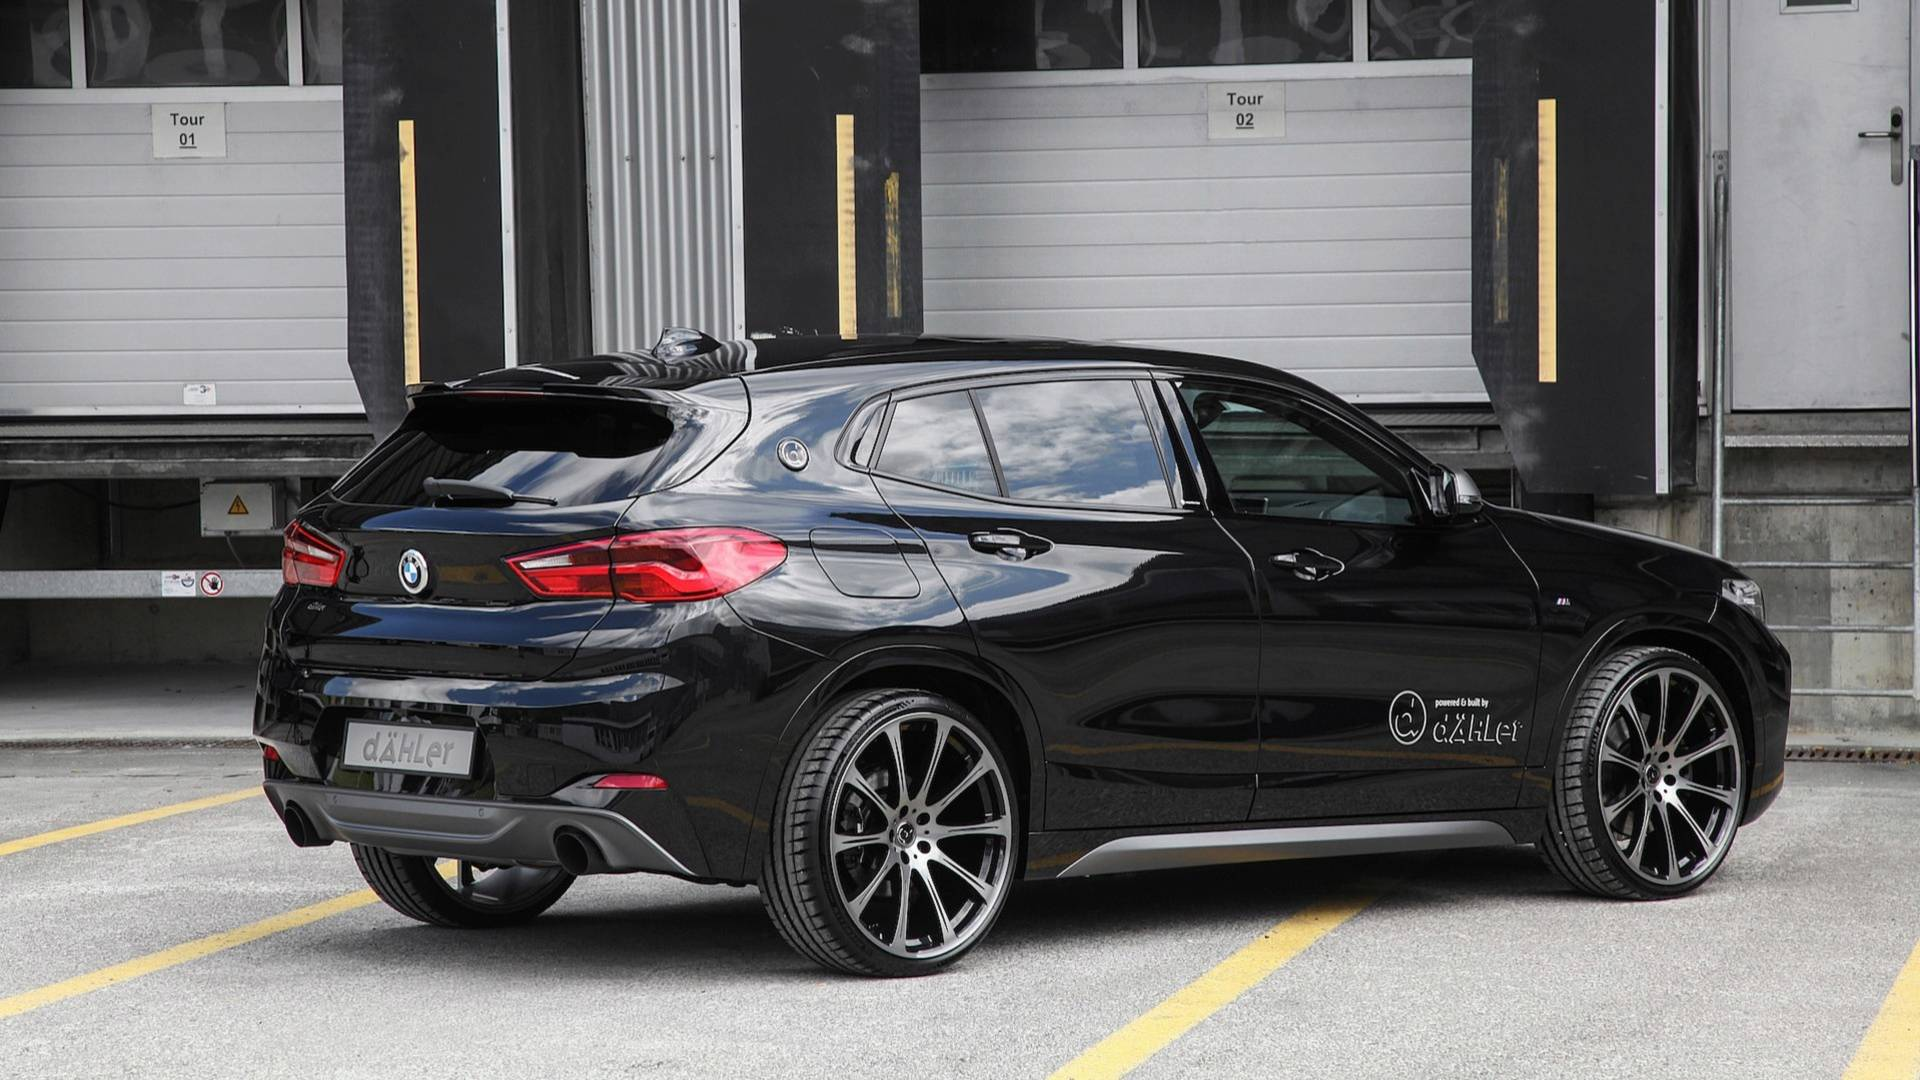 BMW X2 by Dahler (26)